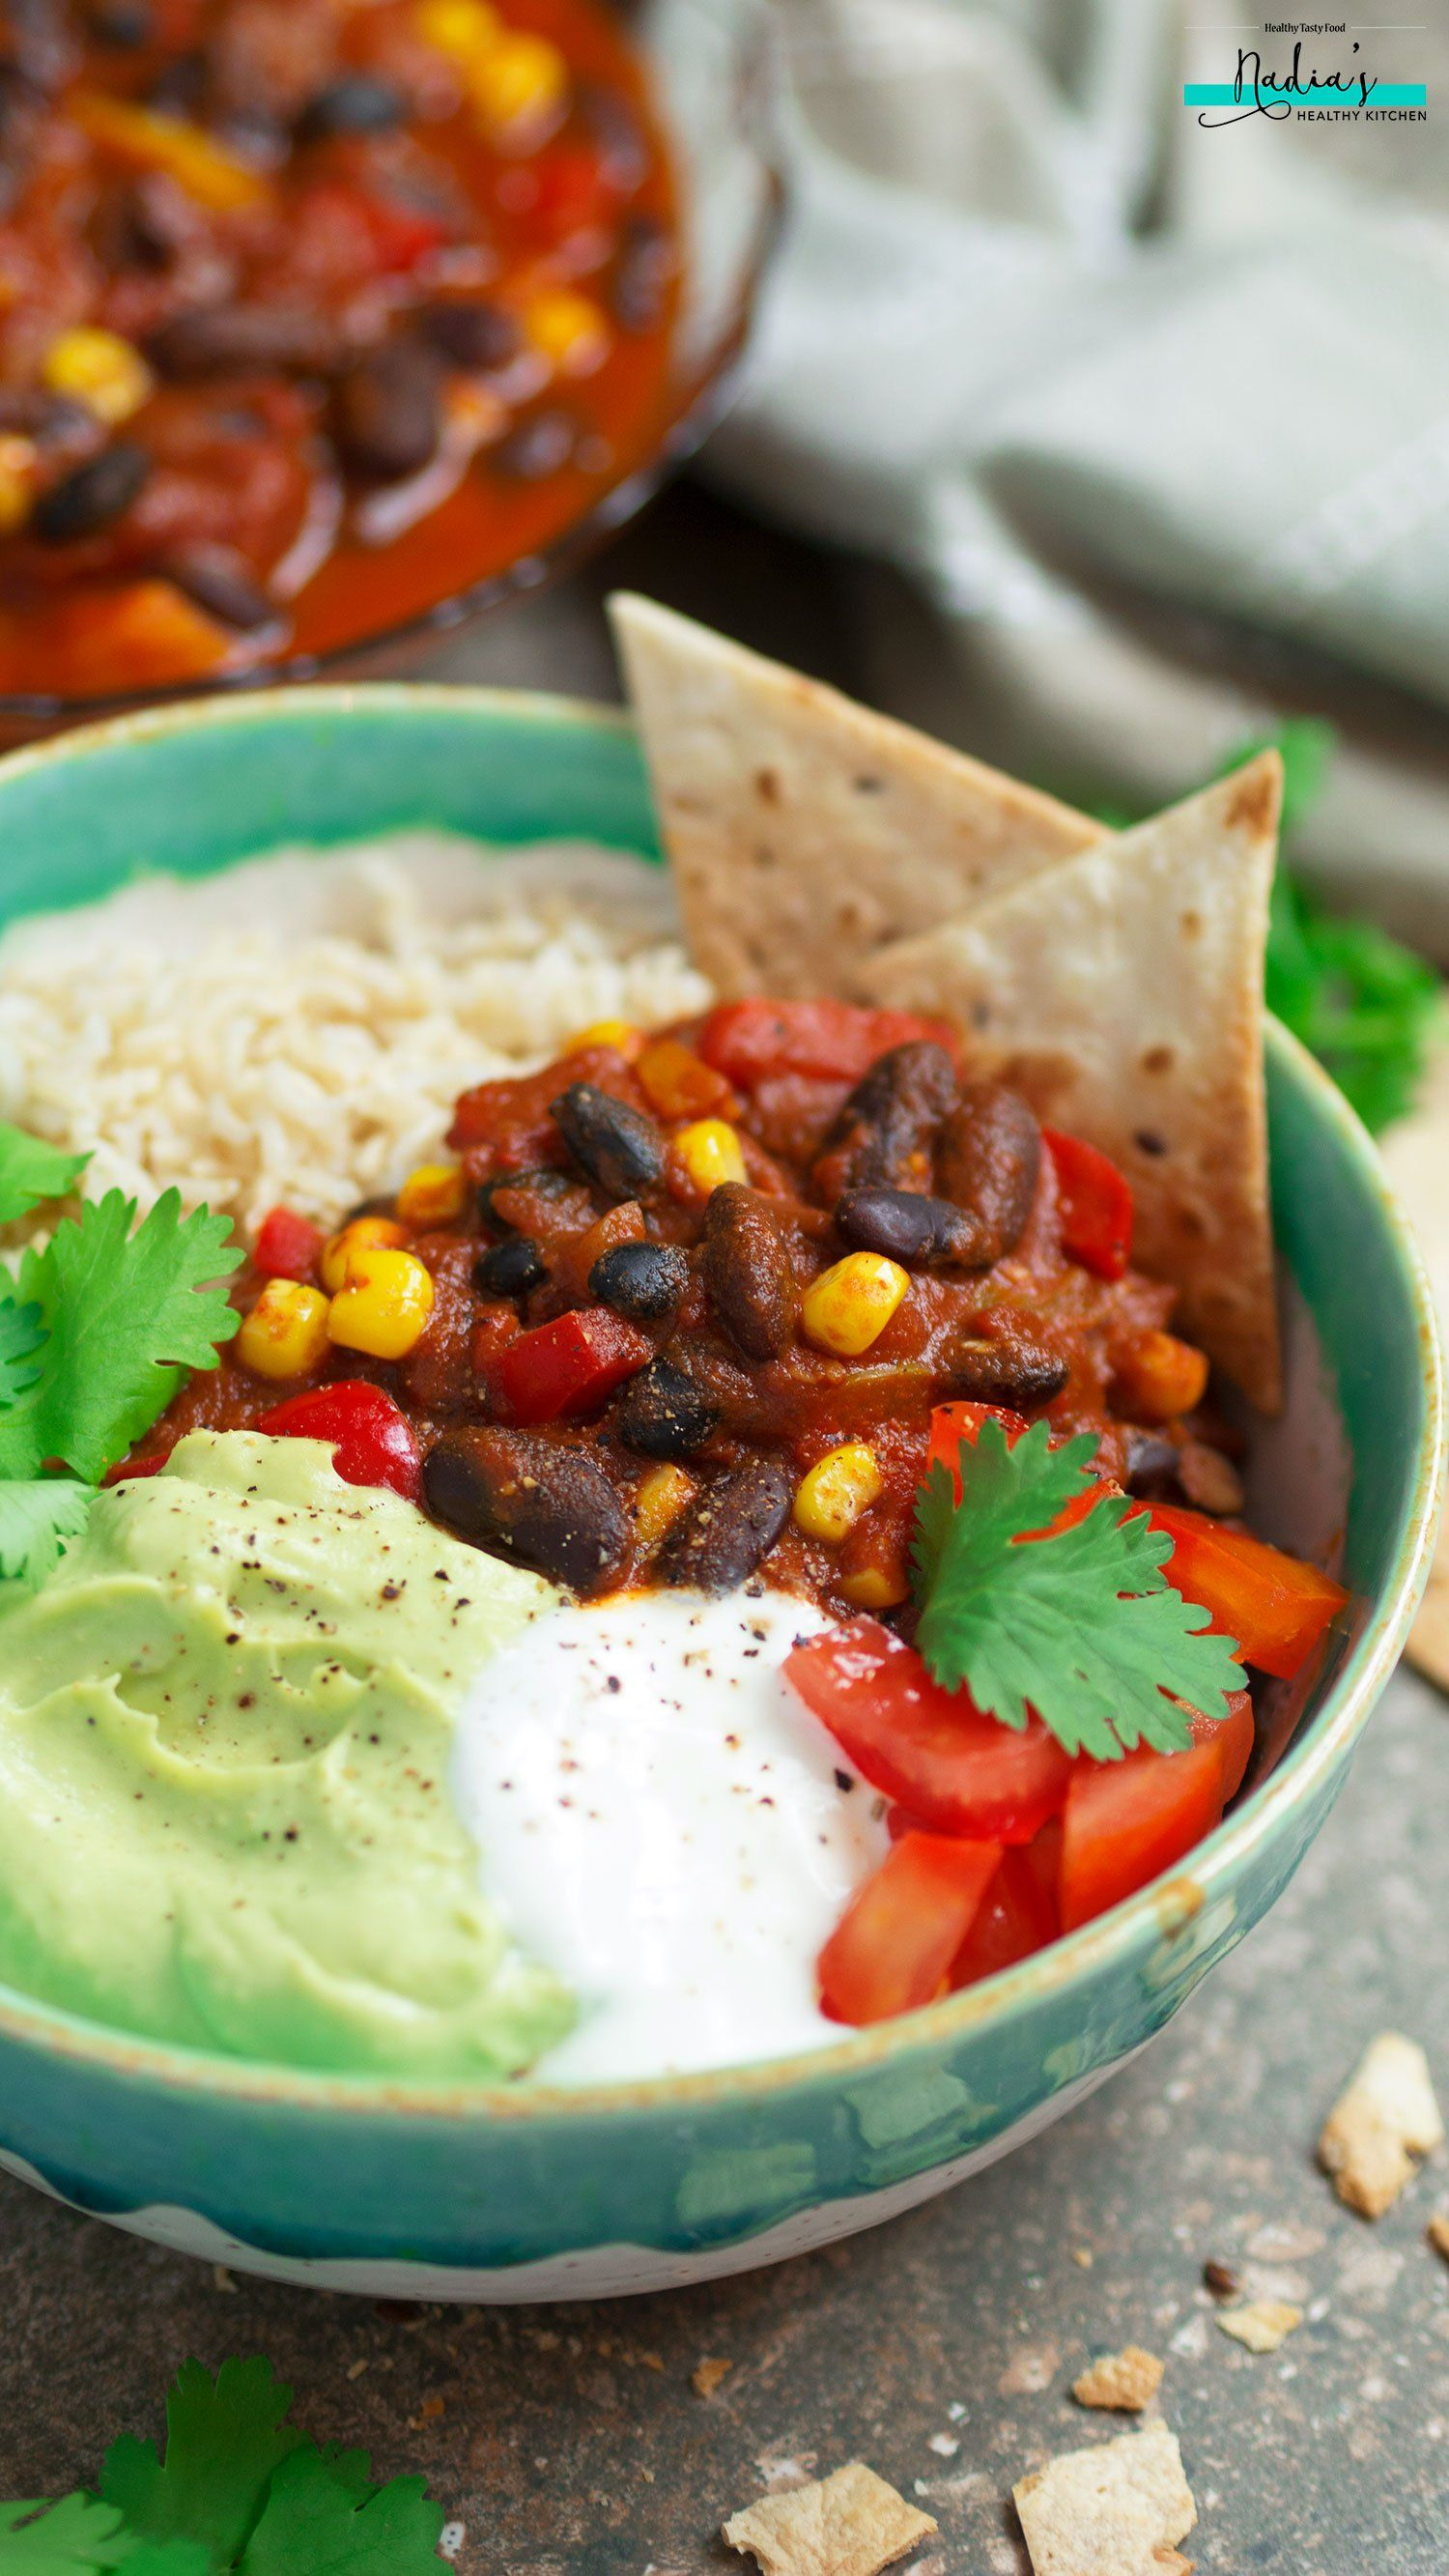 Vegan Chilli Con Carne Recipe Vegan Chilli Con Carne Recipe Chilli Con Carne Recipe Vegetarian Chilli Con Carne